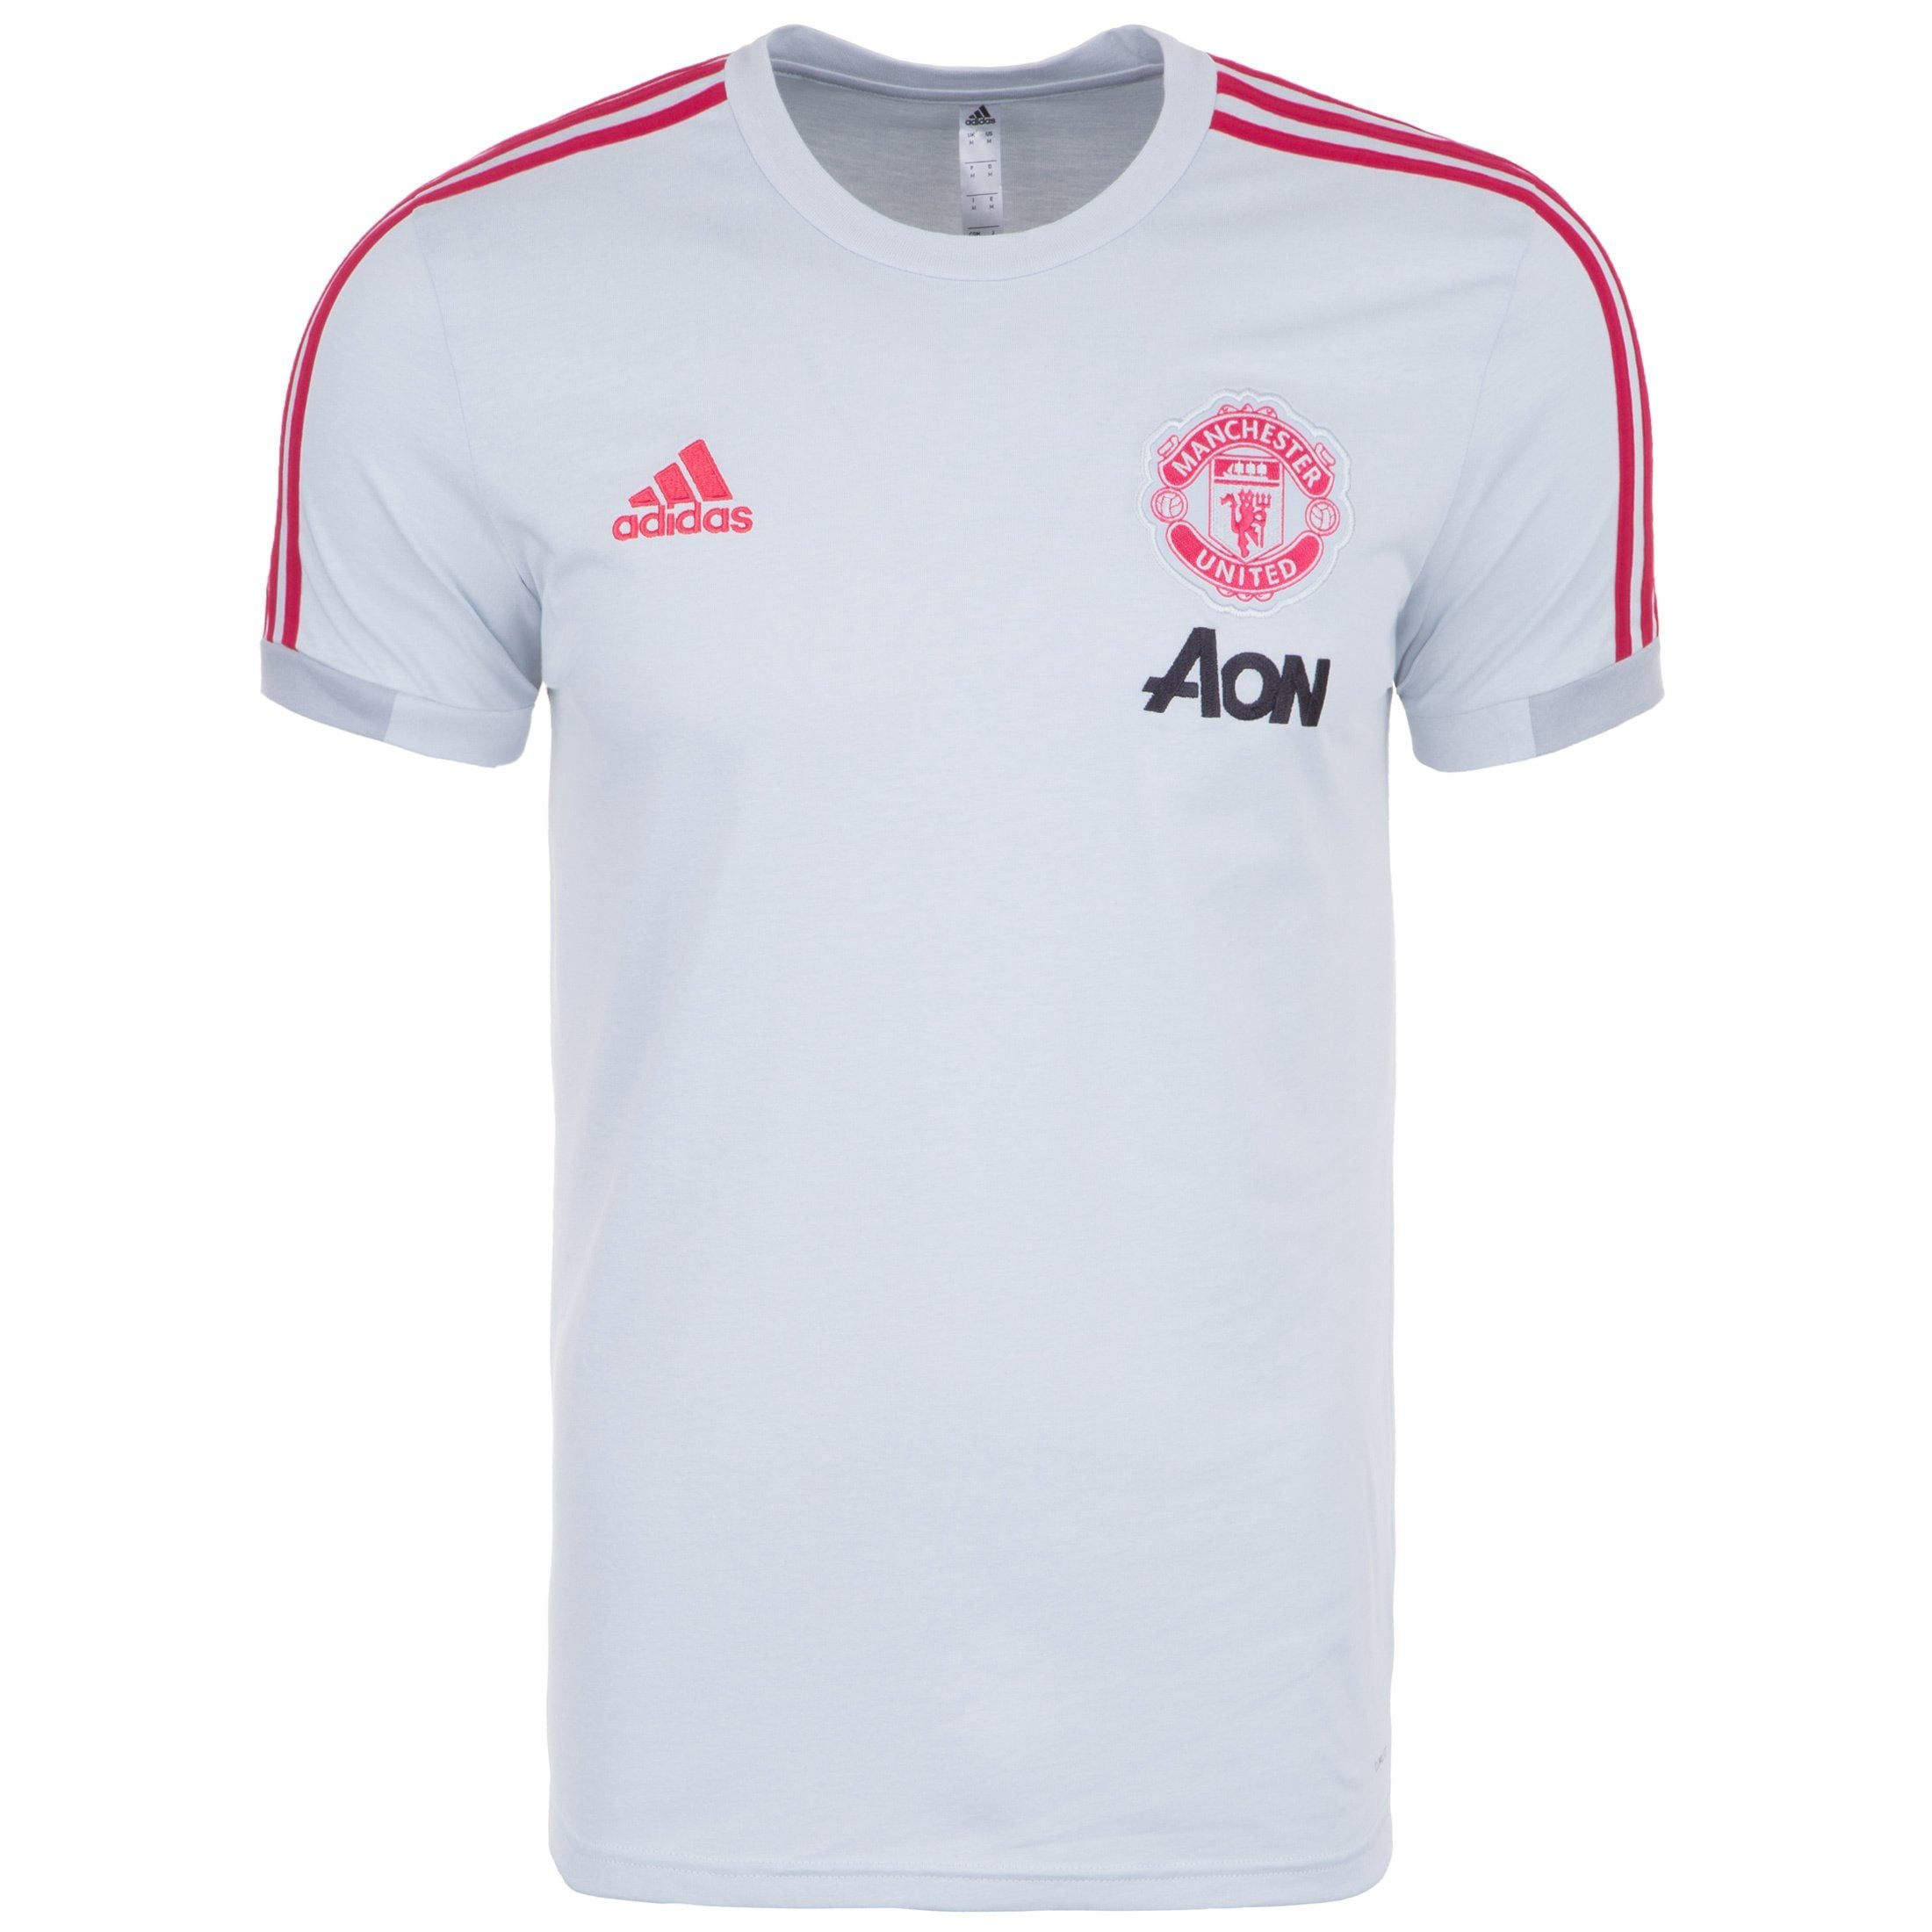 adidas Performance T Shirt »Manchester United«